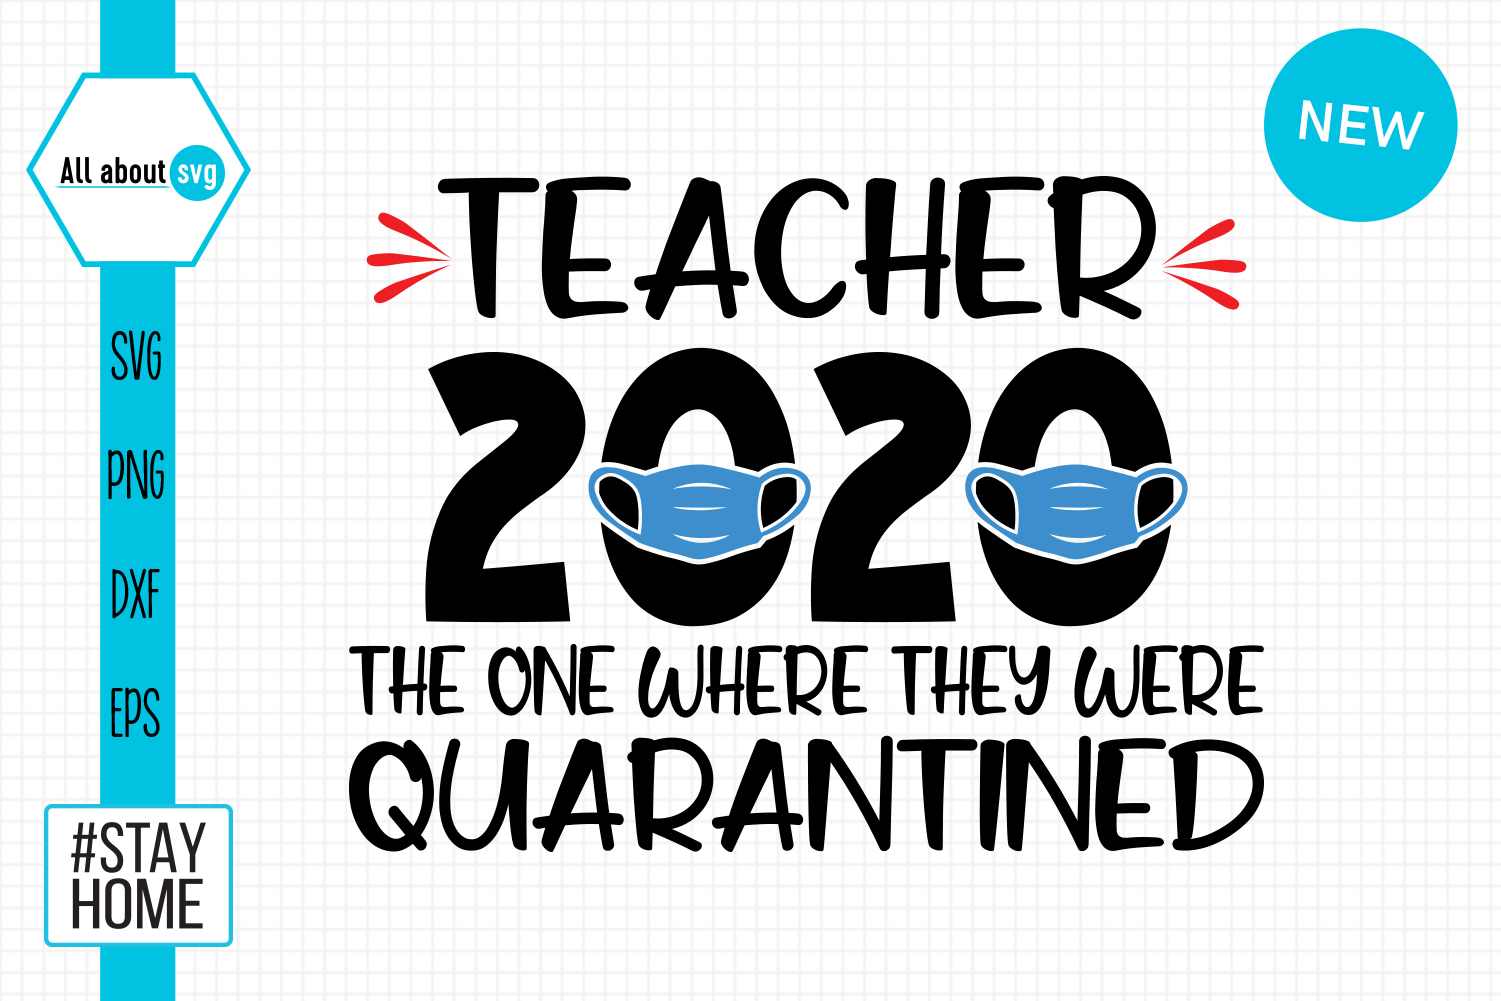 Download Free Teacher 2020 Quarantined Svg Graphic By All About Svg Creative for Cricut Explore, Silhouette and other cutting machines.